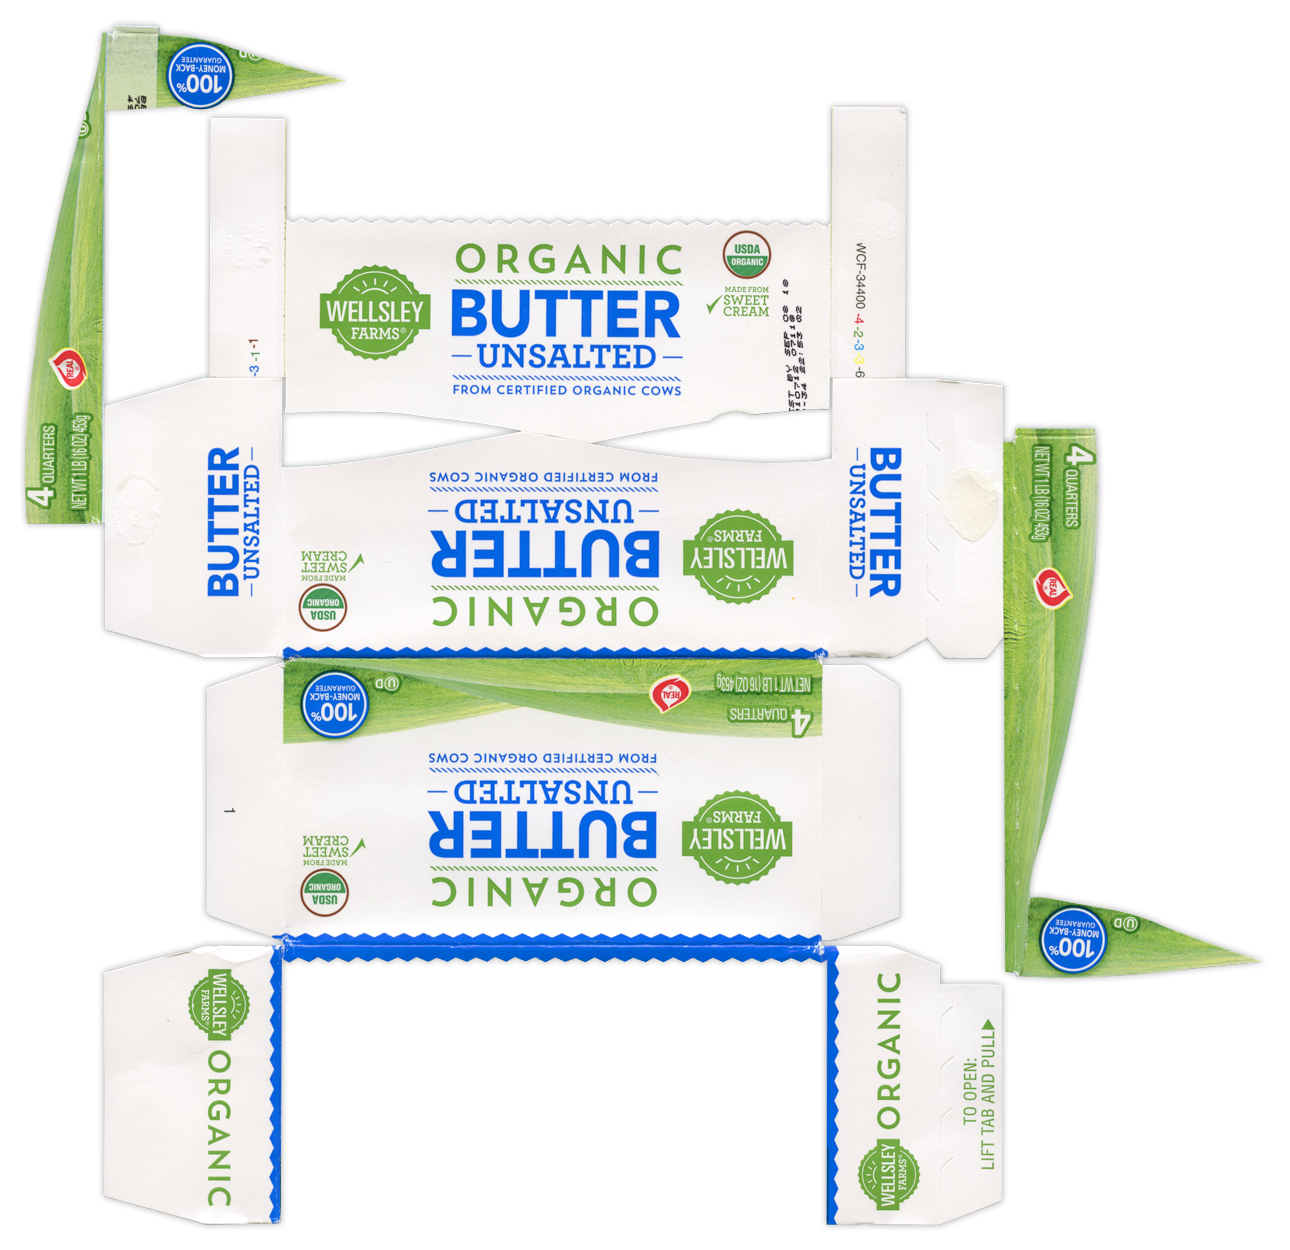 Wellsley Butter BoxBot